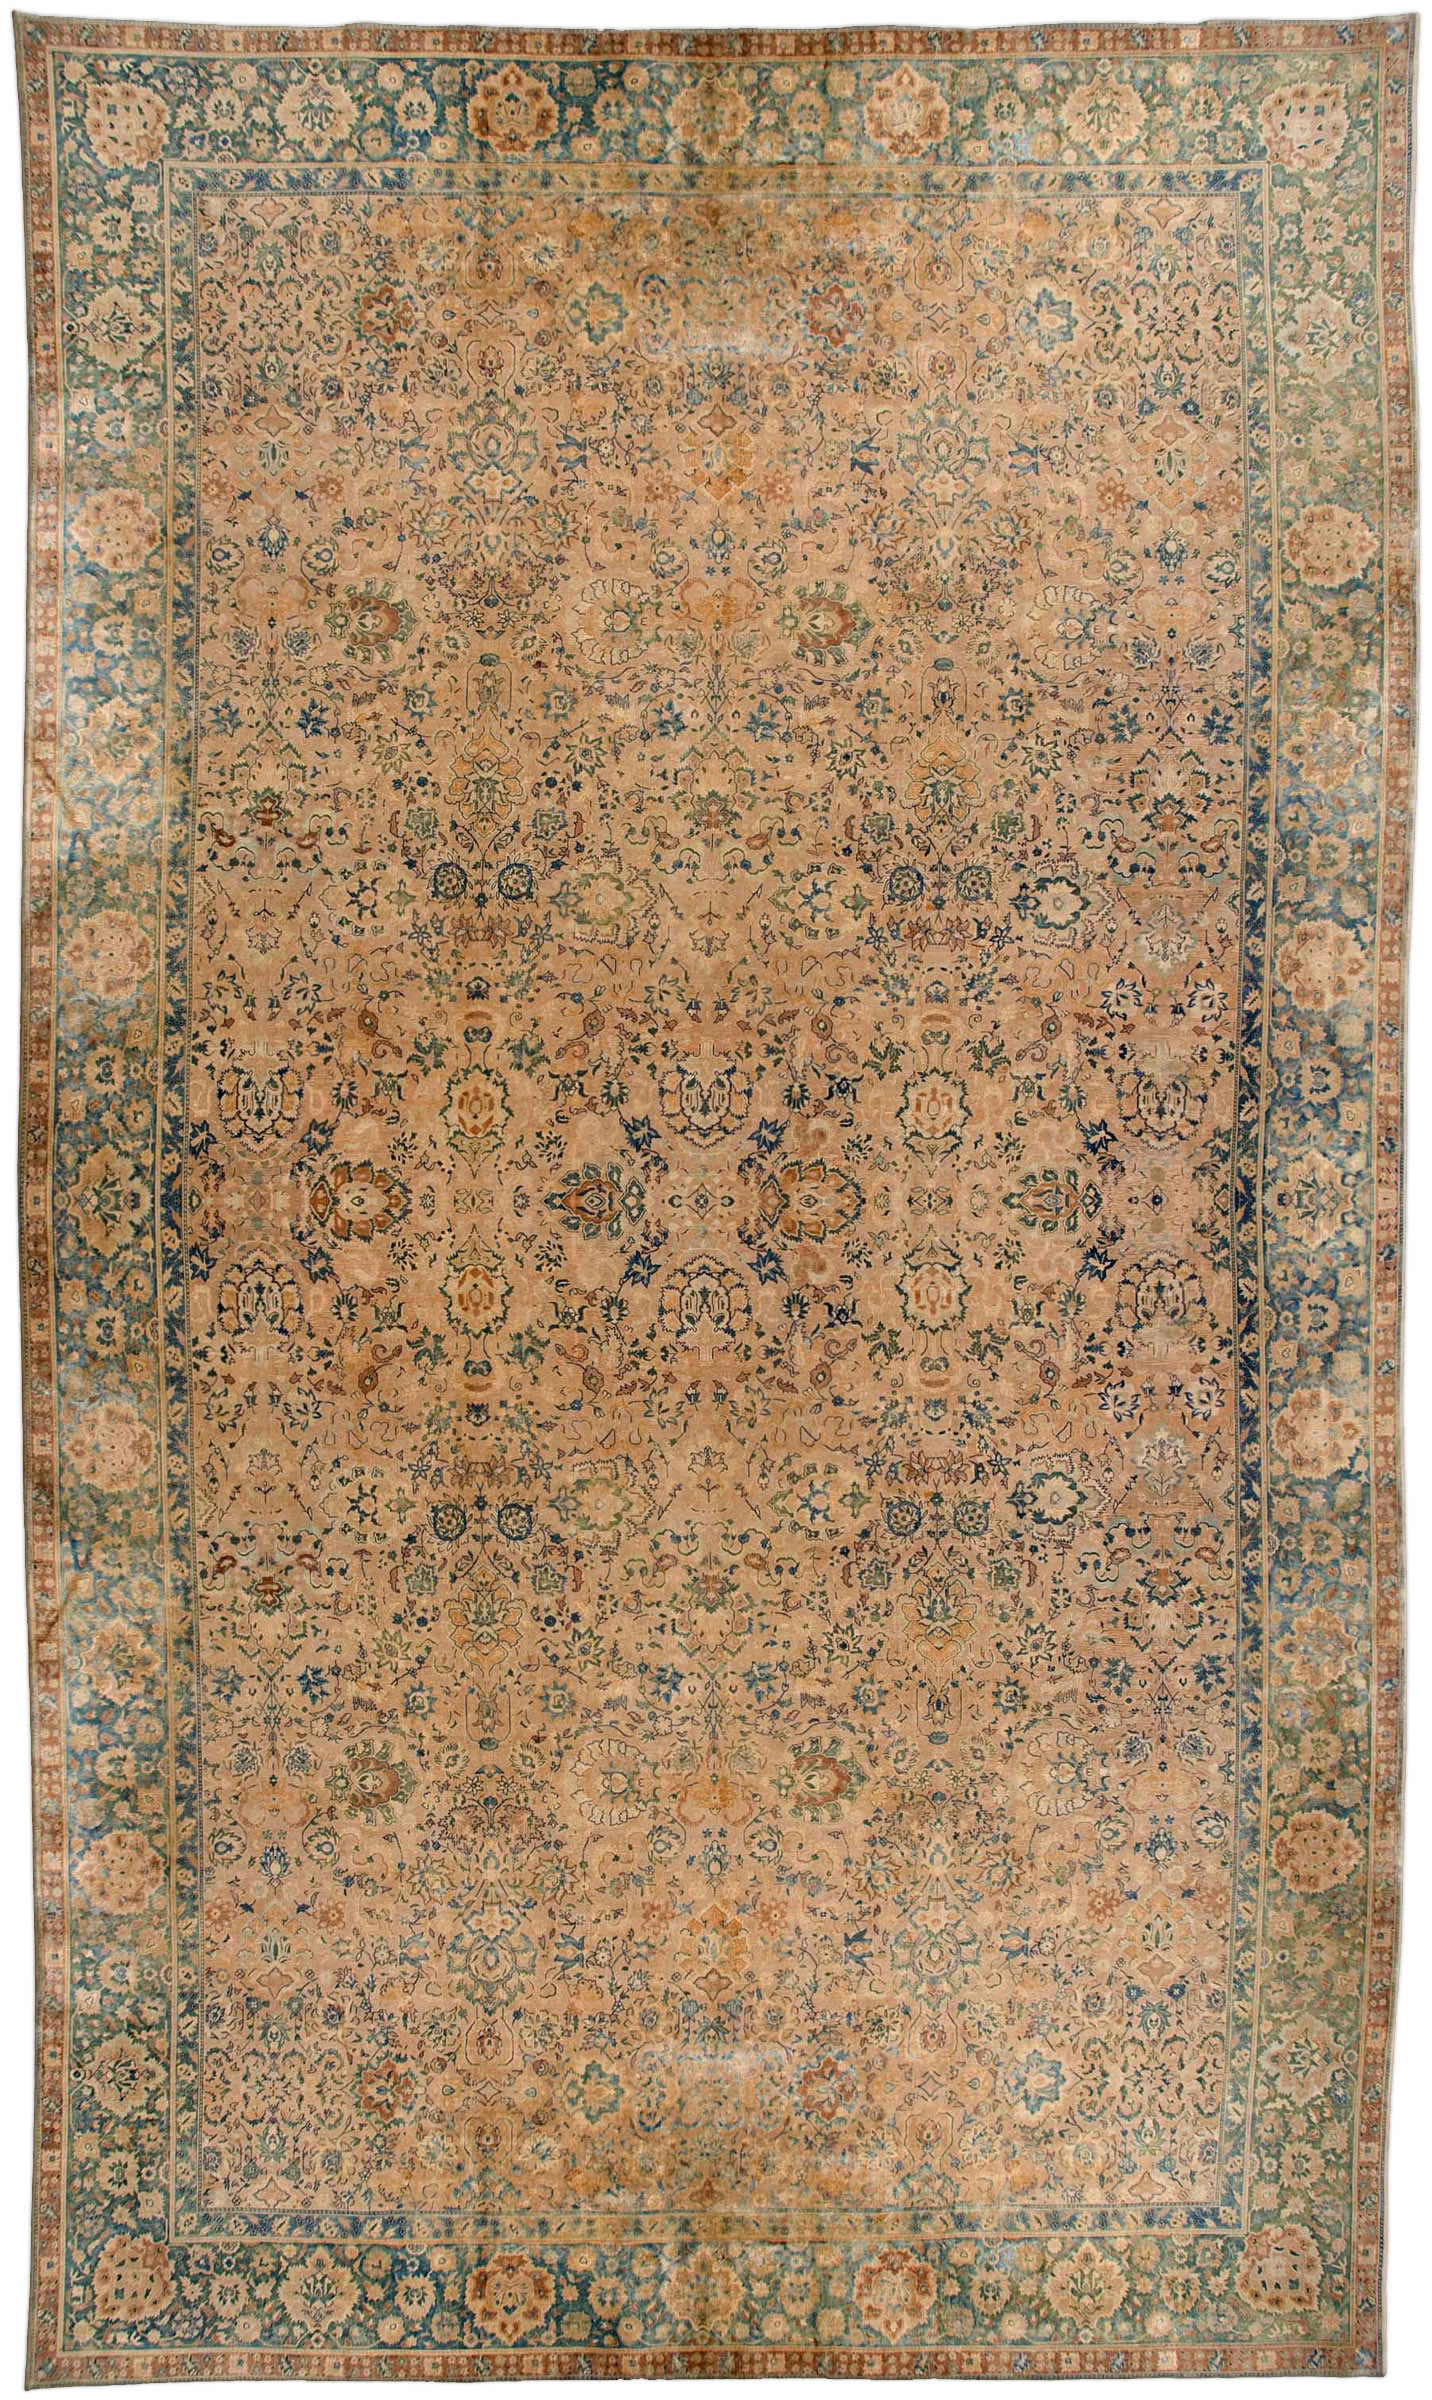 Oversized Antique North Indian Rug BB2686